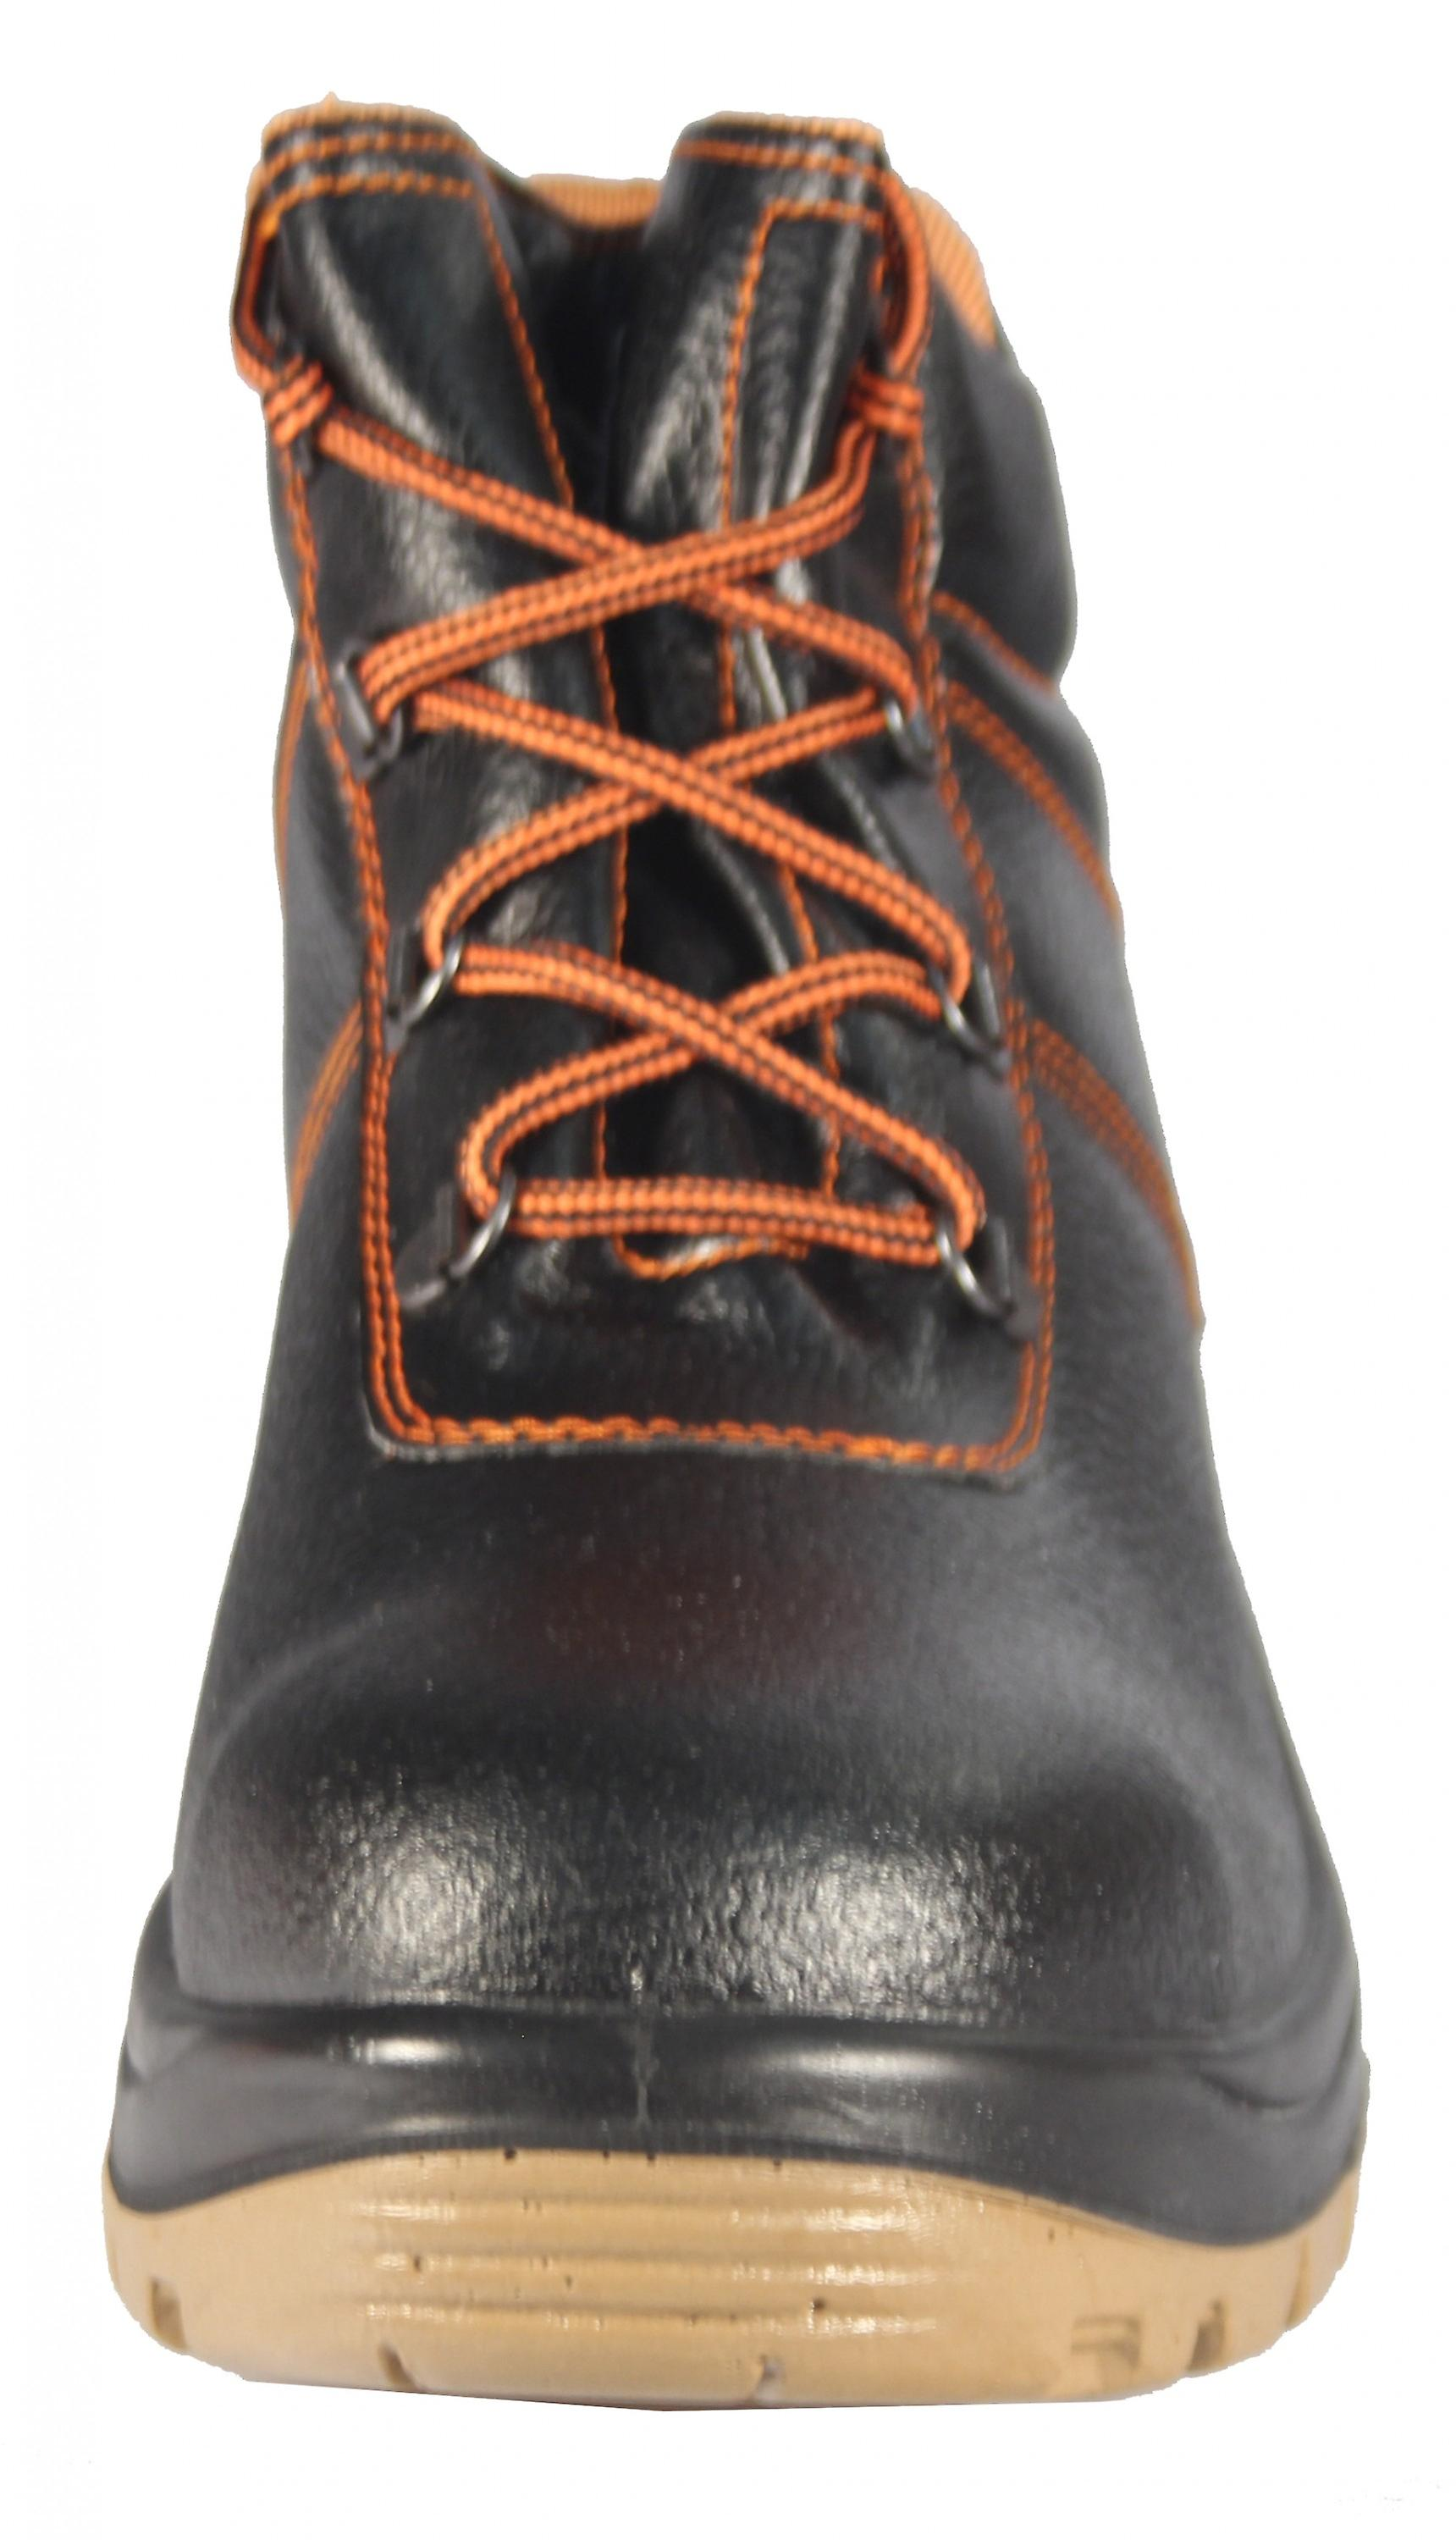 JUPITER 023R work & safety boots boots boots S2 SRC safety shoe leather